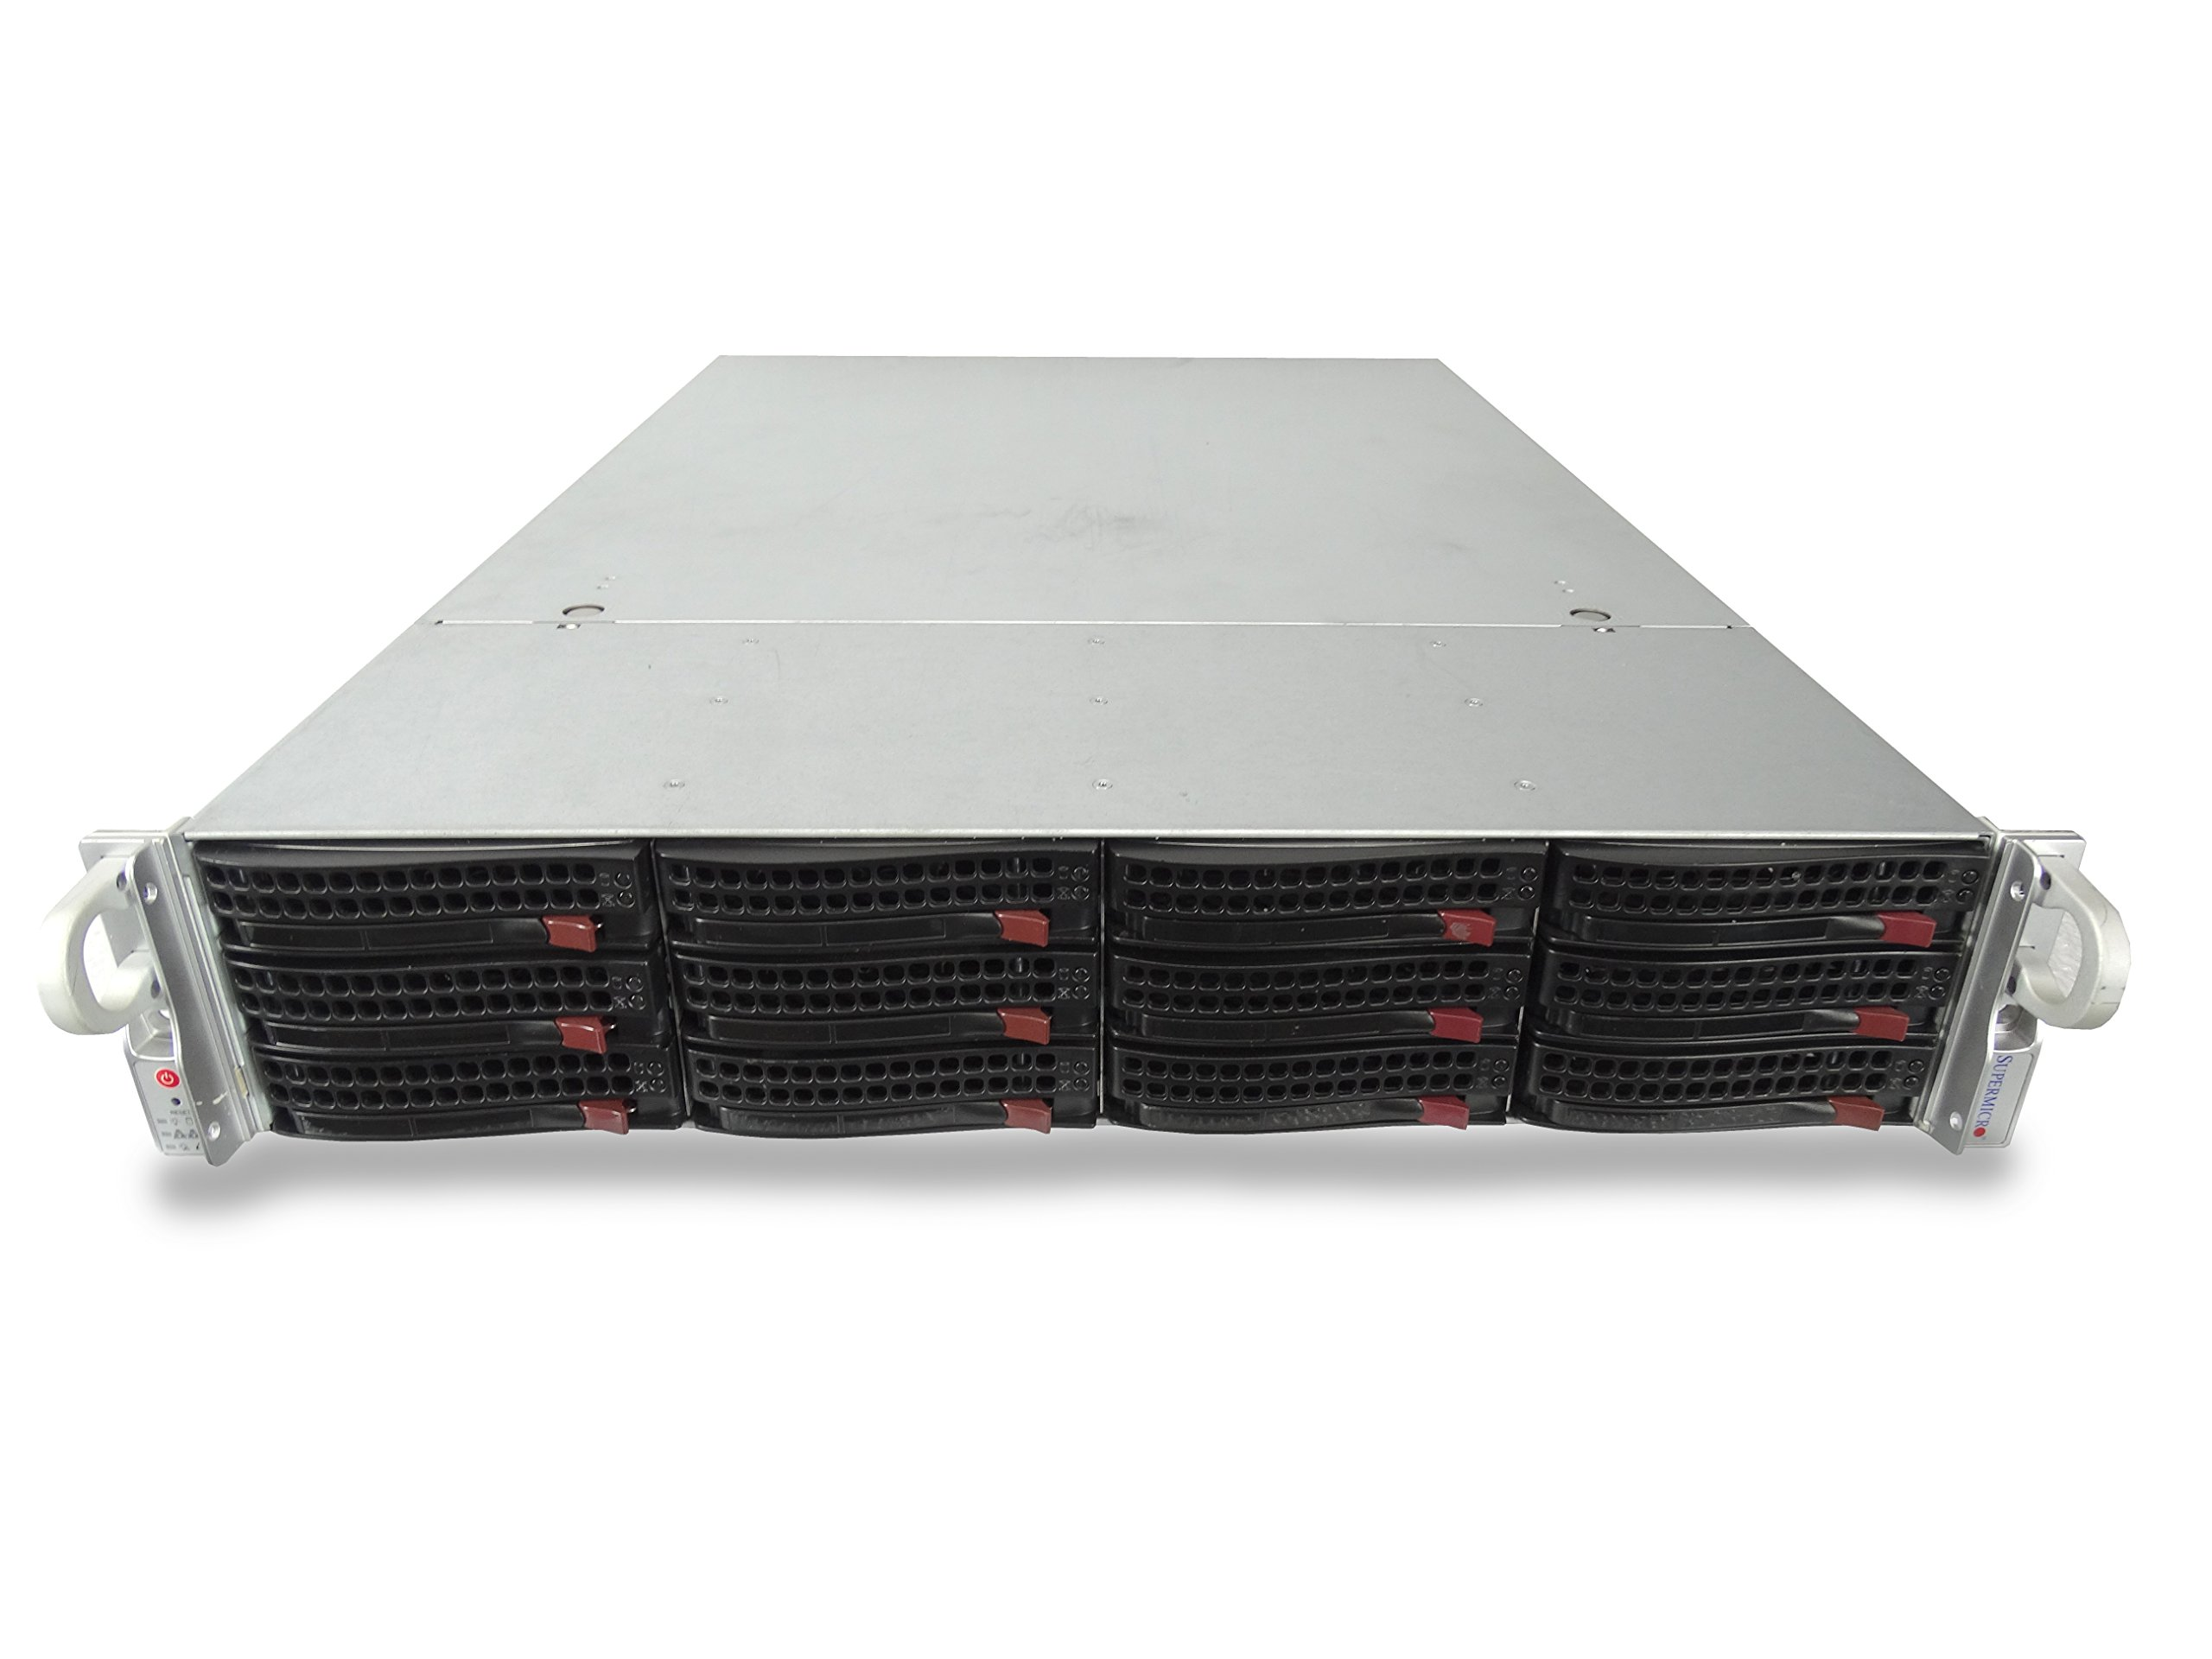 Supermicro SuperServer 6027R 12-Bay LFF 2U Server with X9DRi-LN4F+, 2X Intel Xeon E5-2630L V2 2.4GHz 6C, 16GB DDR3, 4X Trays Included, 9265-8i, 2X 920W PSUs, No Rails (Certified Refurbished)